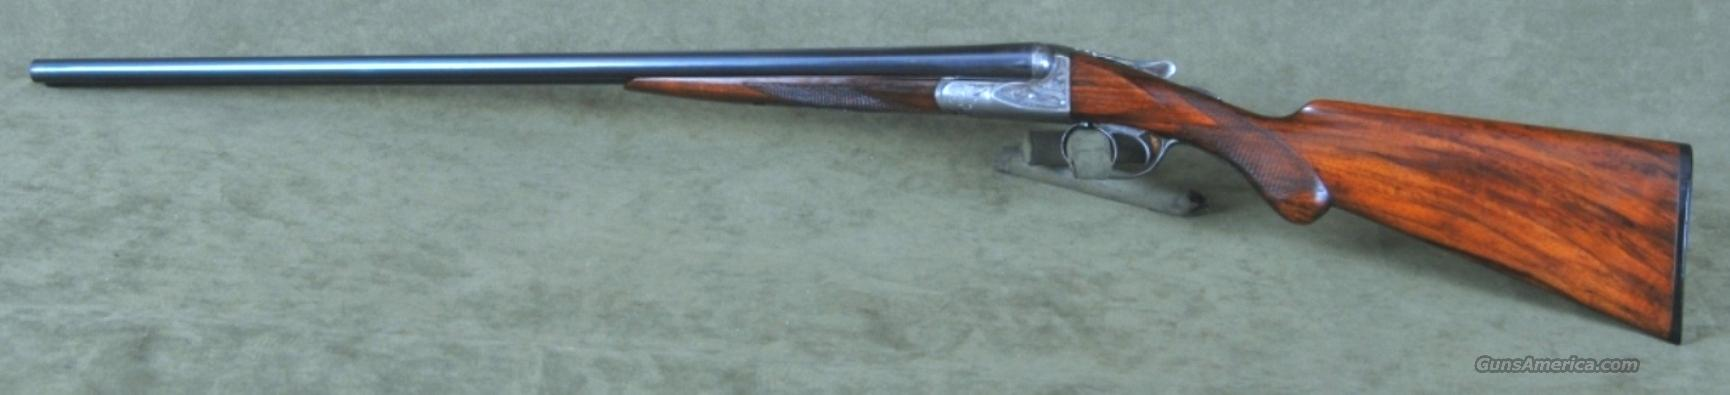 Fox A Grade 20ga. - EXCEPTIONAL FACTORY WOOD, NICE ORIGINAL GUN  Guns > Shotguns > Fox Shotguns